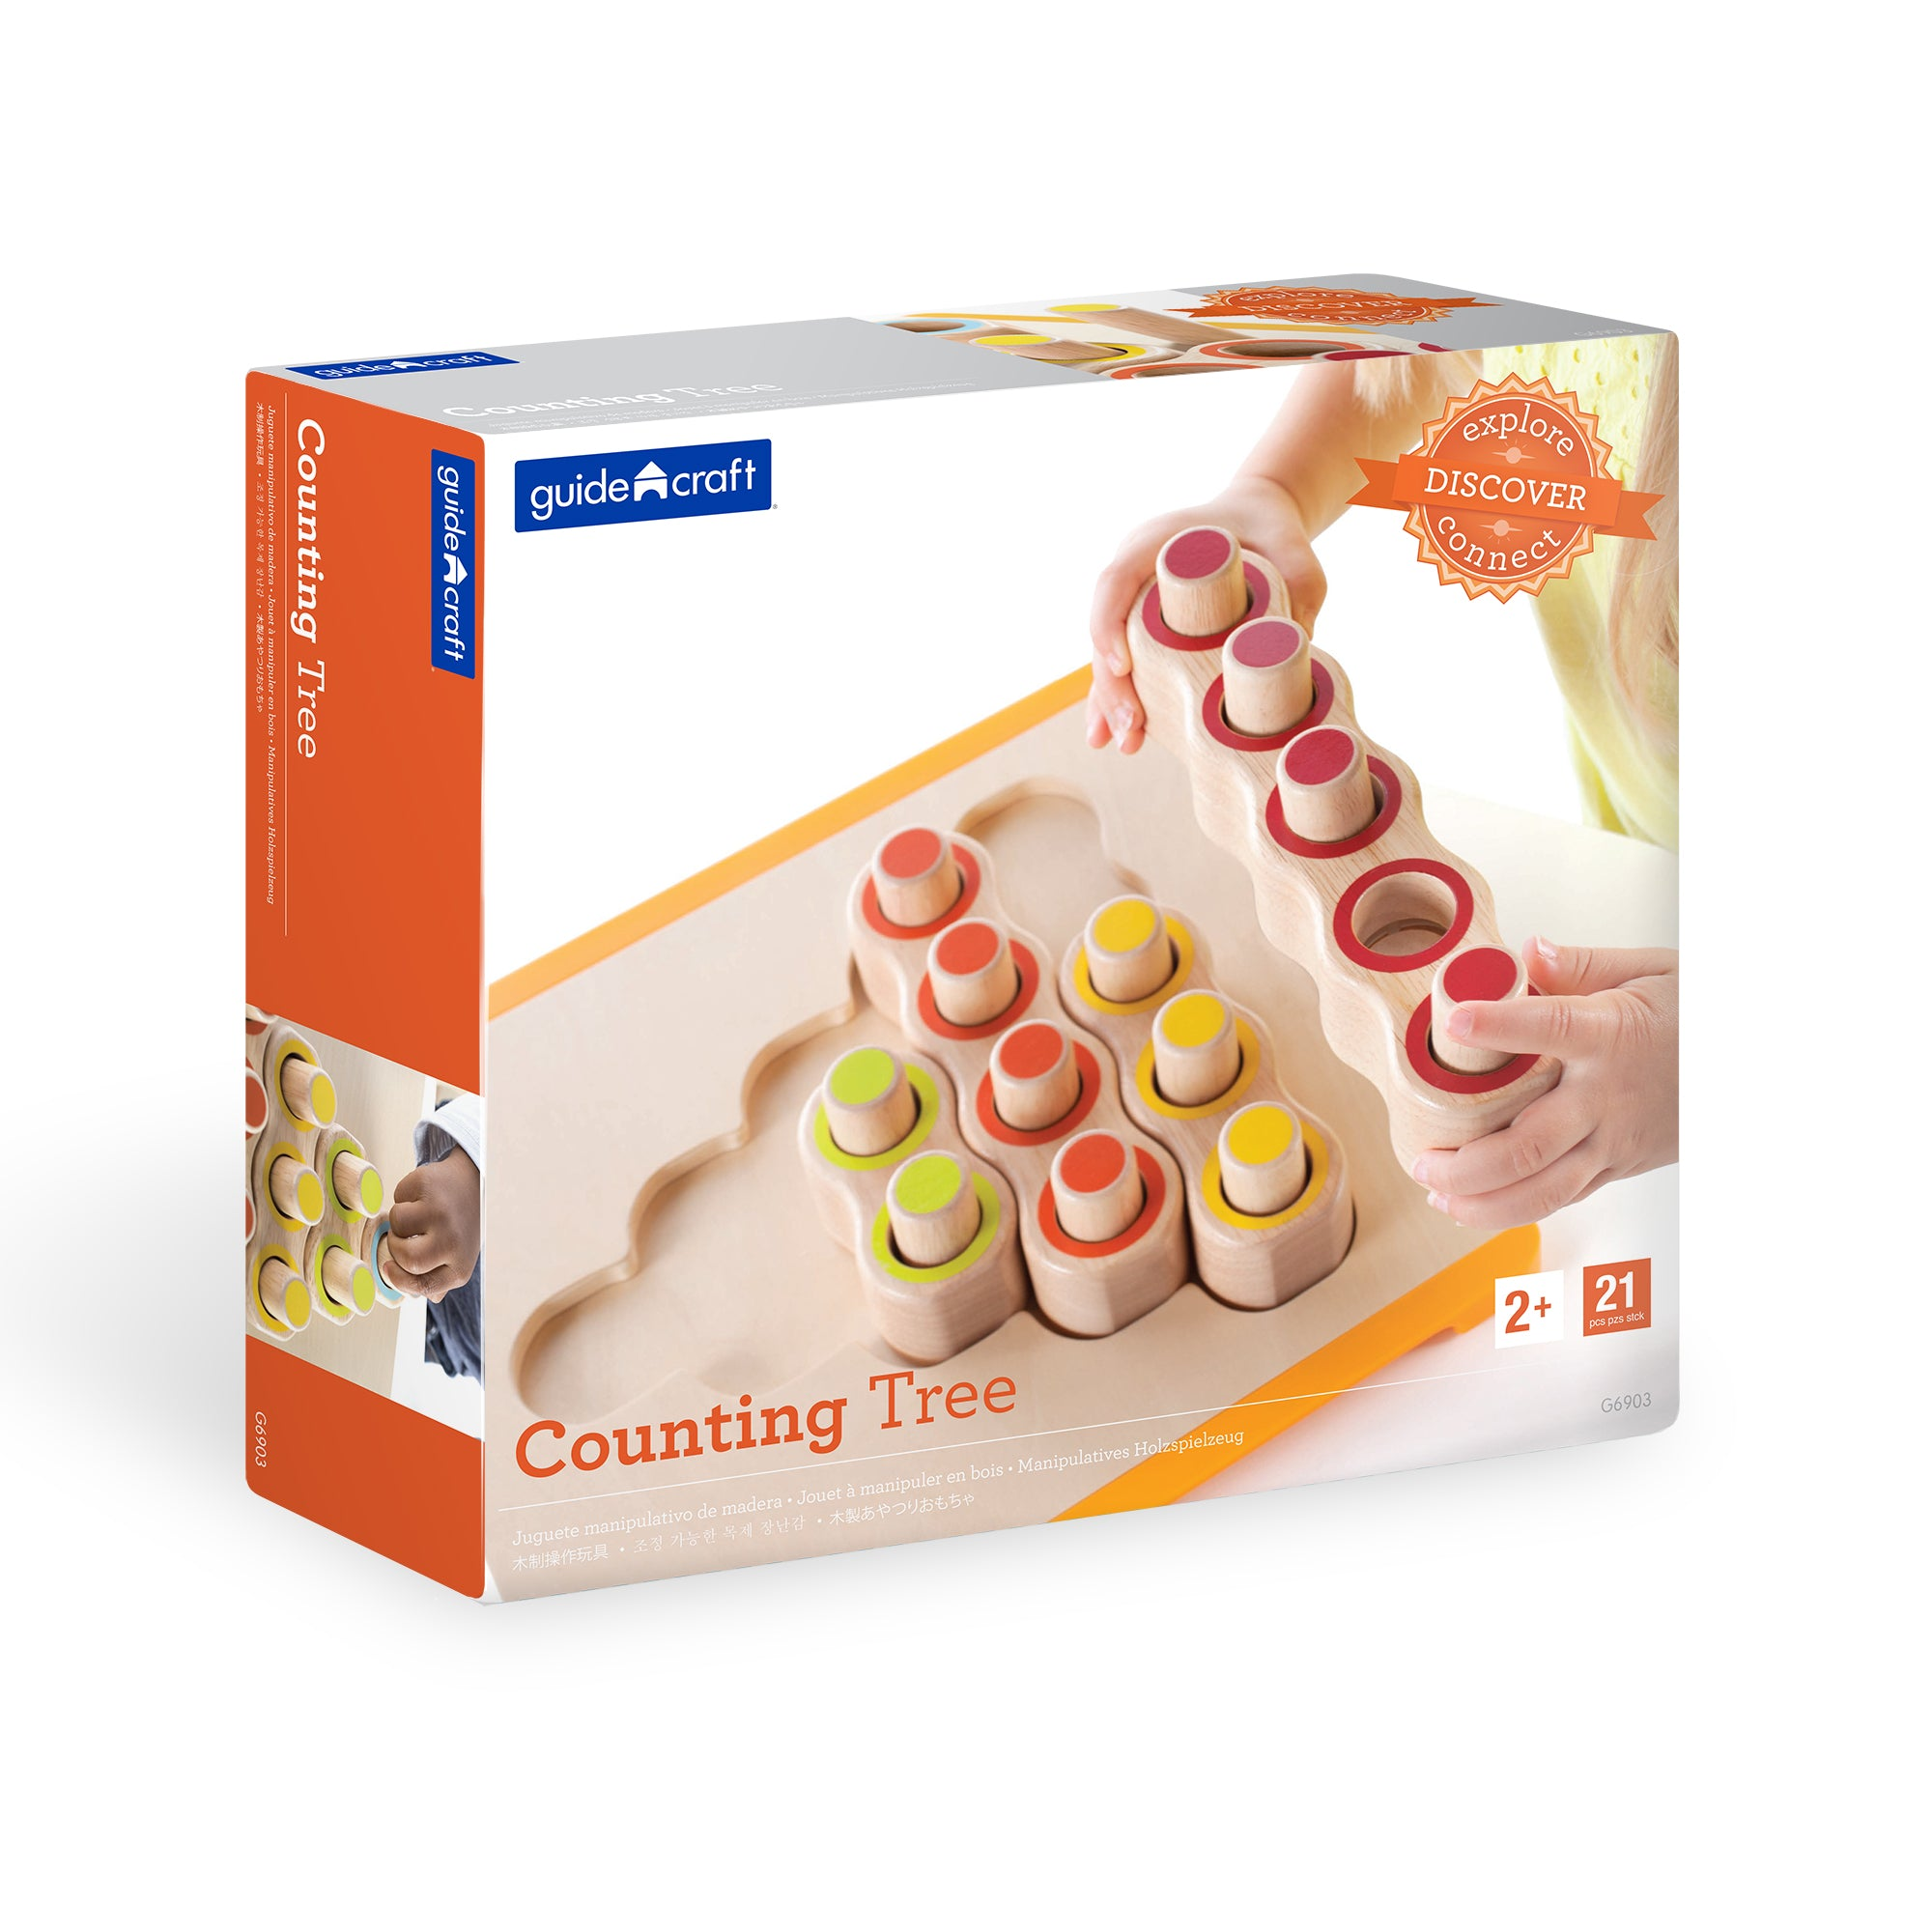 Guidecraft Counting Tree